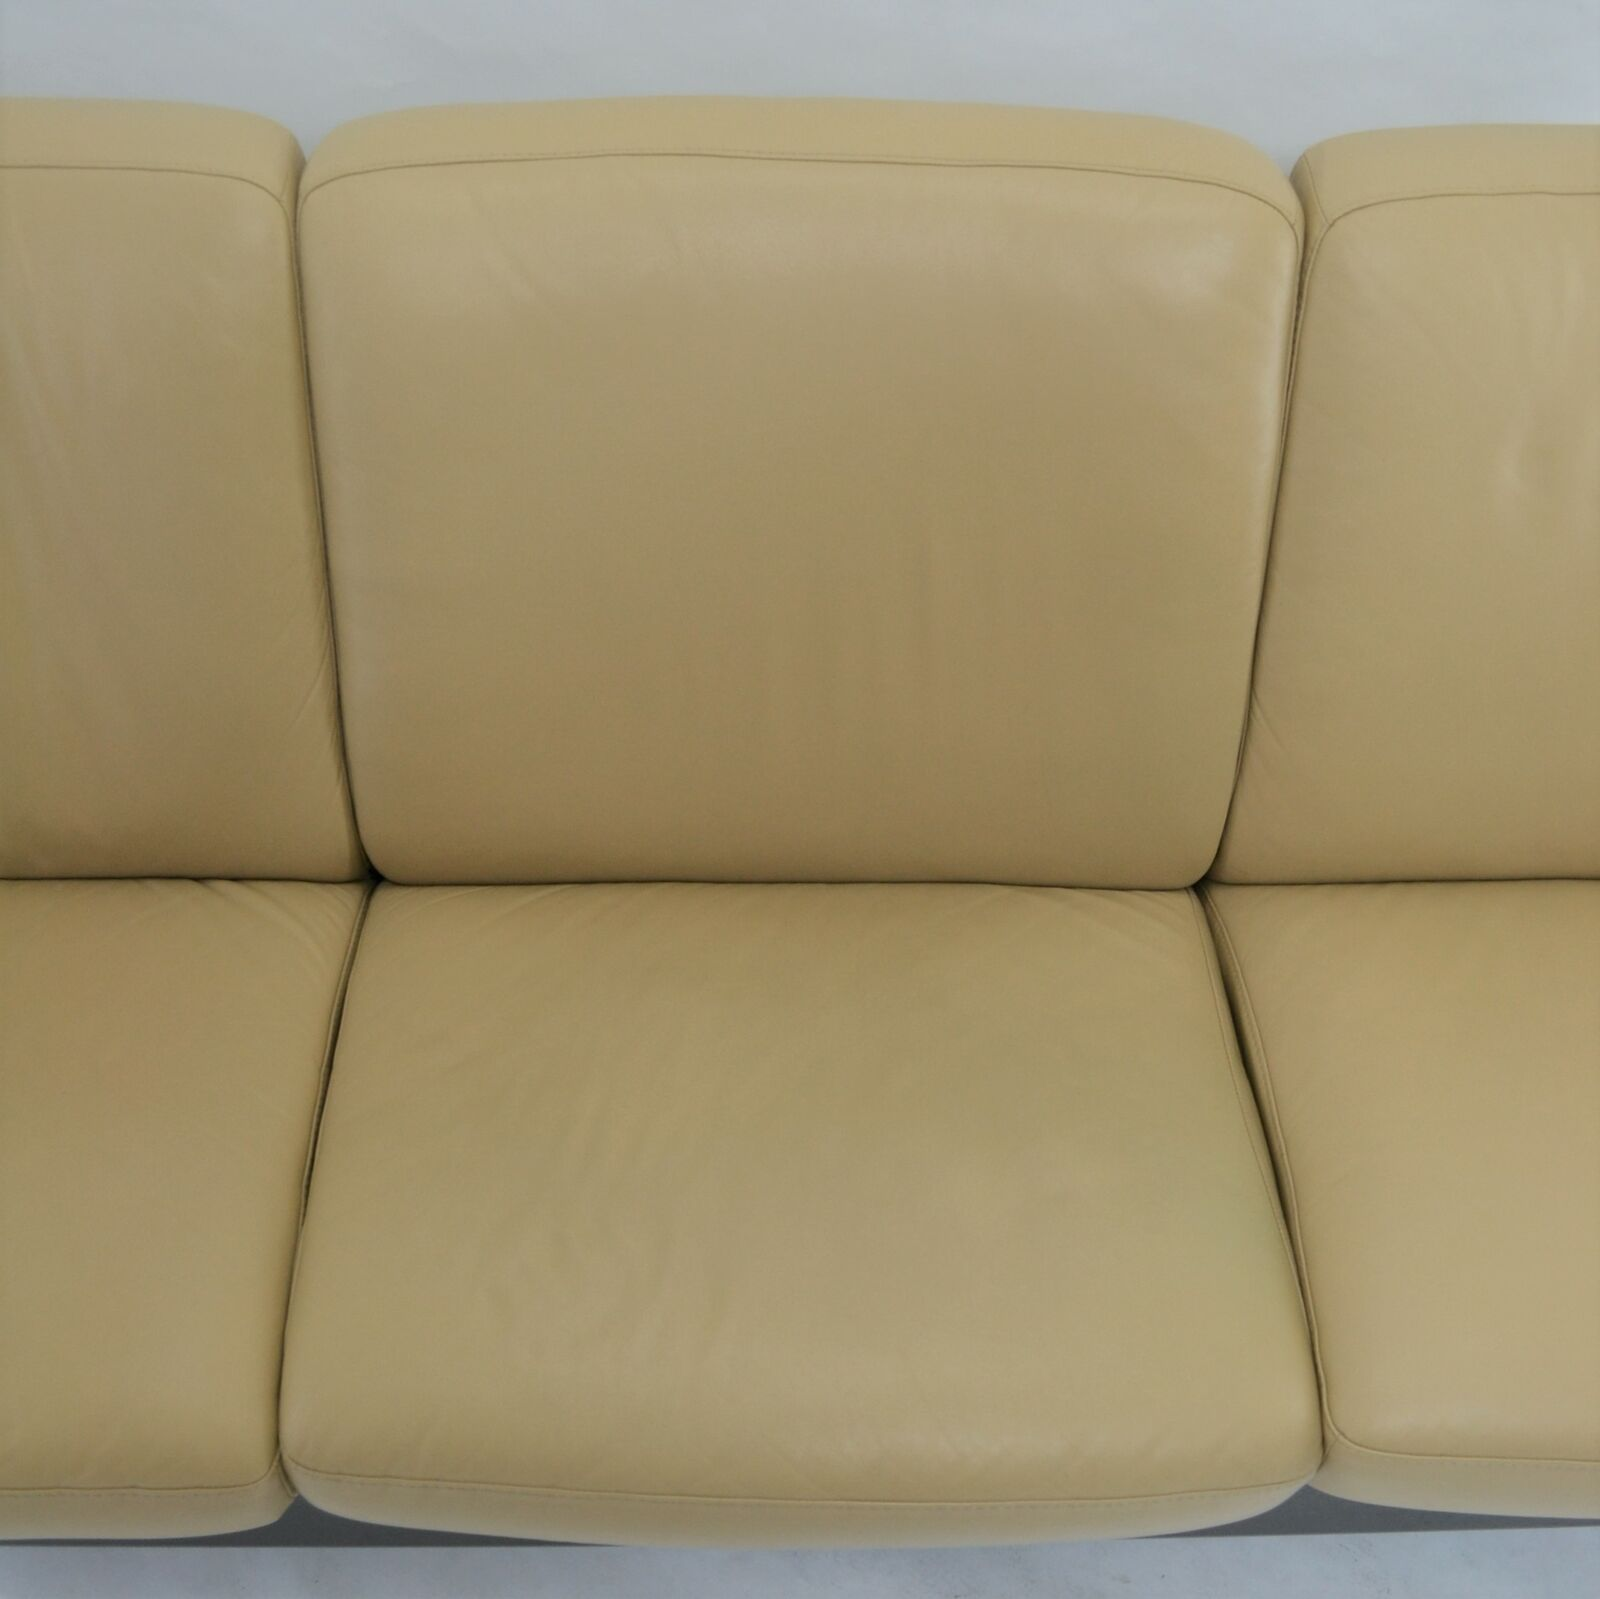 Full Size of Stressless Oslo Sofa Review Furniture Usa Red Leather Nz Ekornes Used Australia Cost Couches Sale Uk Sofas And Chairs Wave Couch Pegasus 3 Sitzer Leder Heimkino Sofa Stressless Sofa